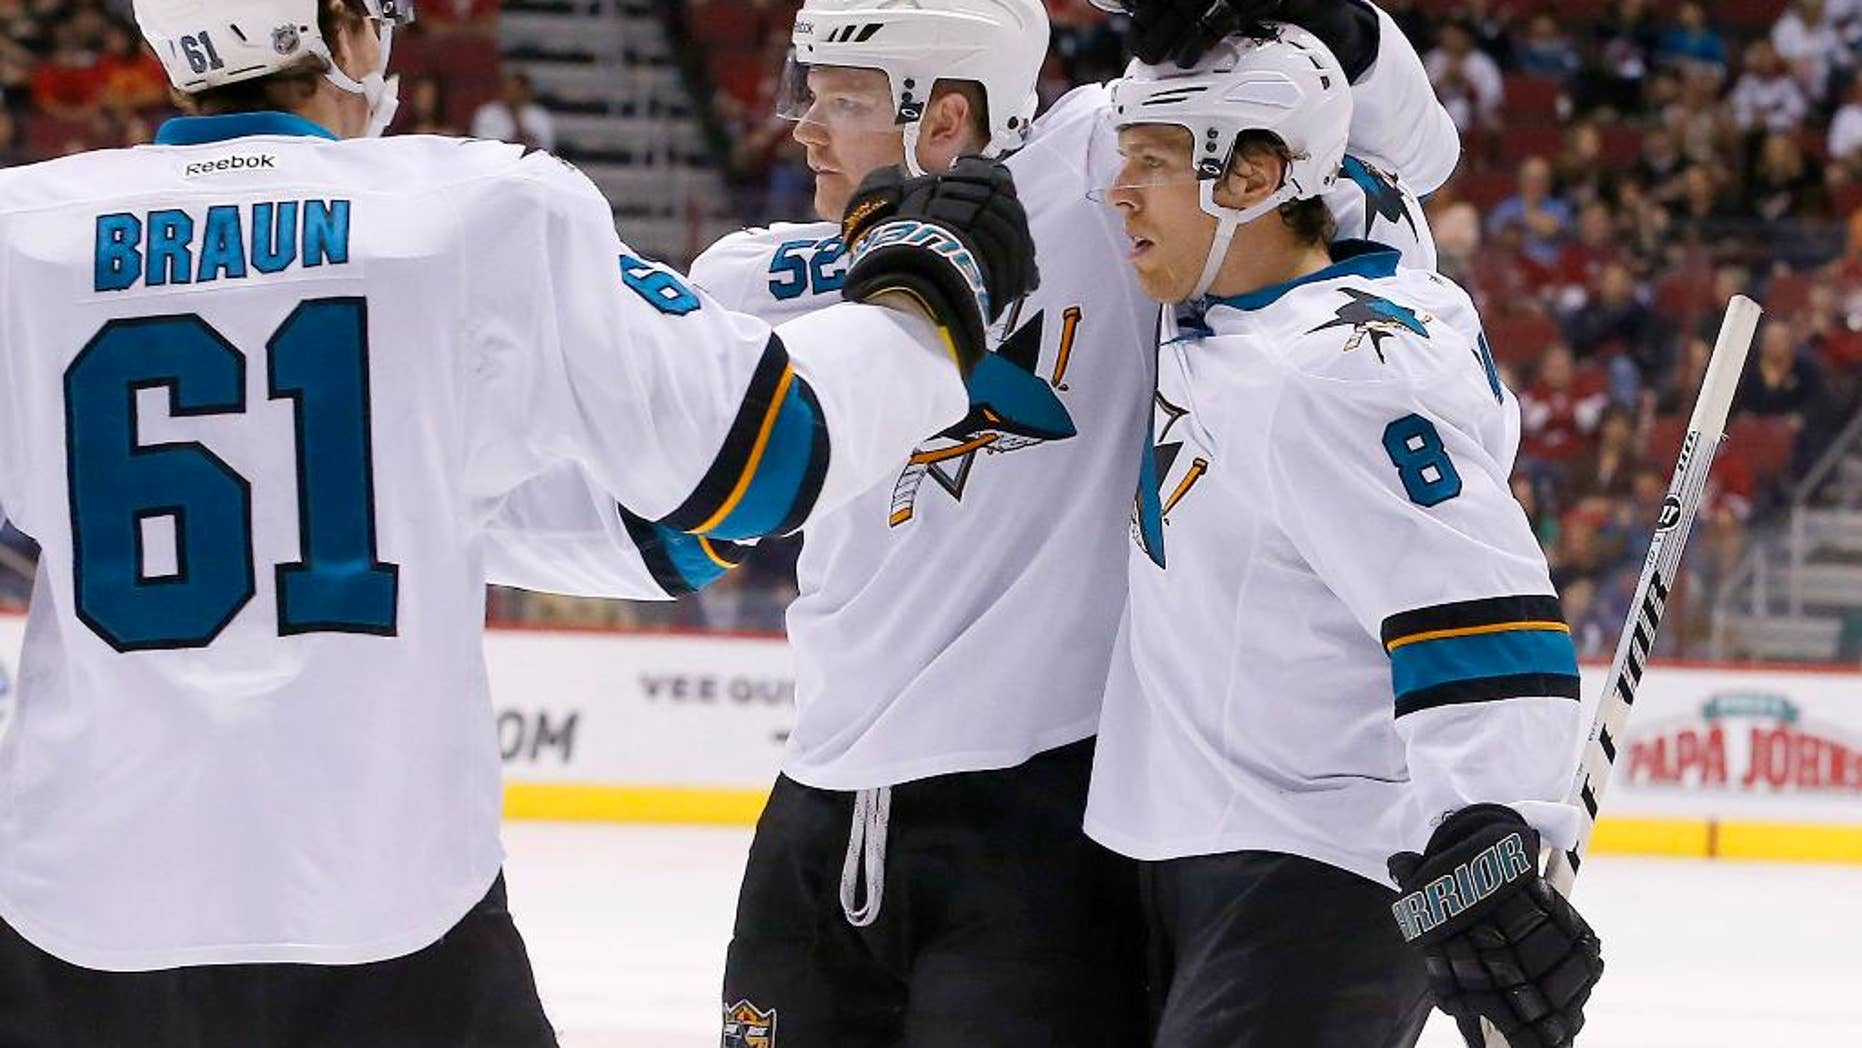 San Jose Sharks' Joe Pavelski (8) celebrates his second goal in the first period of an NHL hockey game against the Phoenix Coyotes with teammates Justin Braun (61) and Matt Irwin (52) on Saturday, April 12, 2014, in Glendale, Ariz. (AP Photo/Ross D. Franklin)